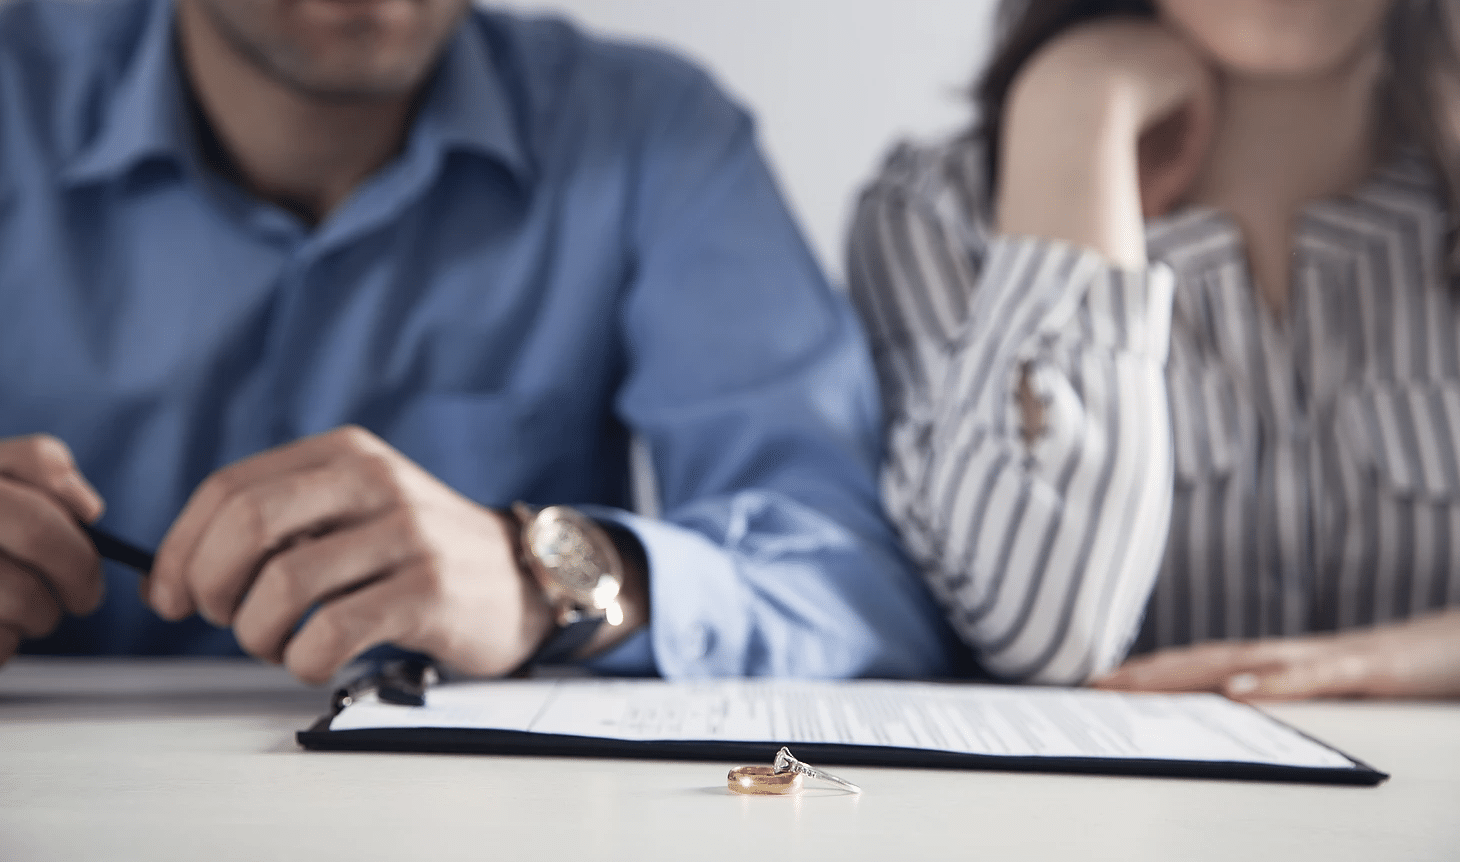 Couple signing divorce papers with rings on the table